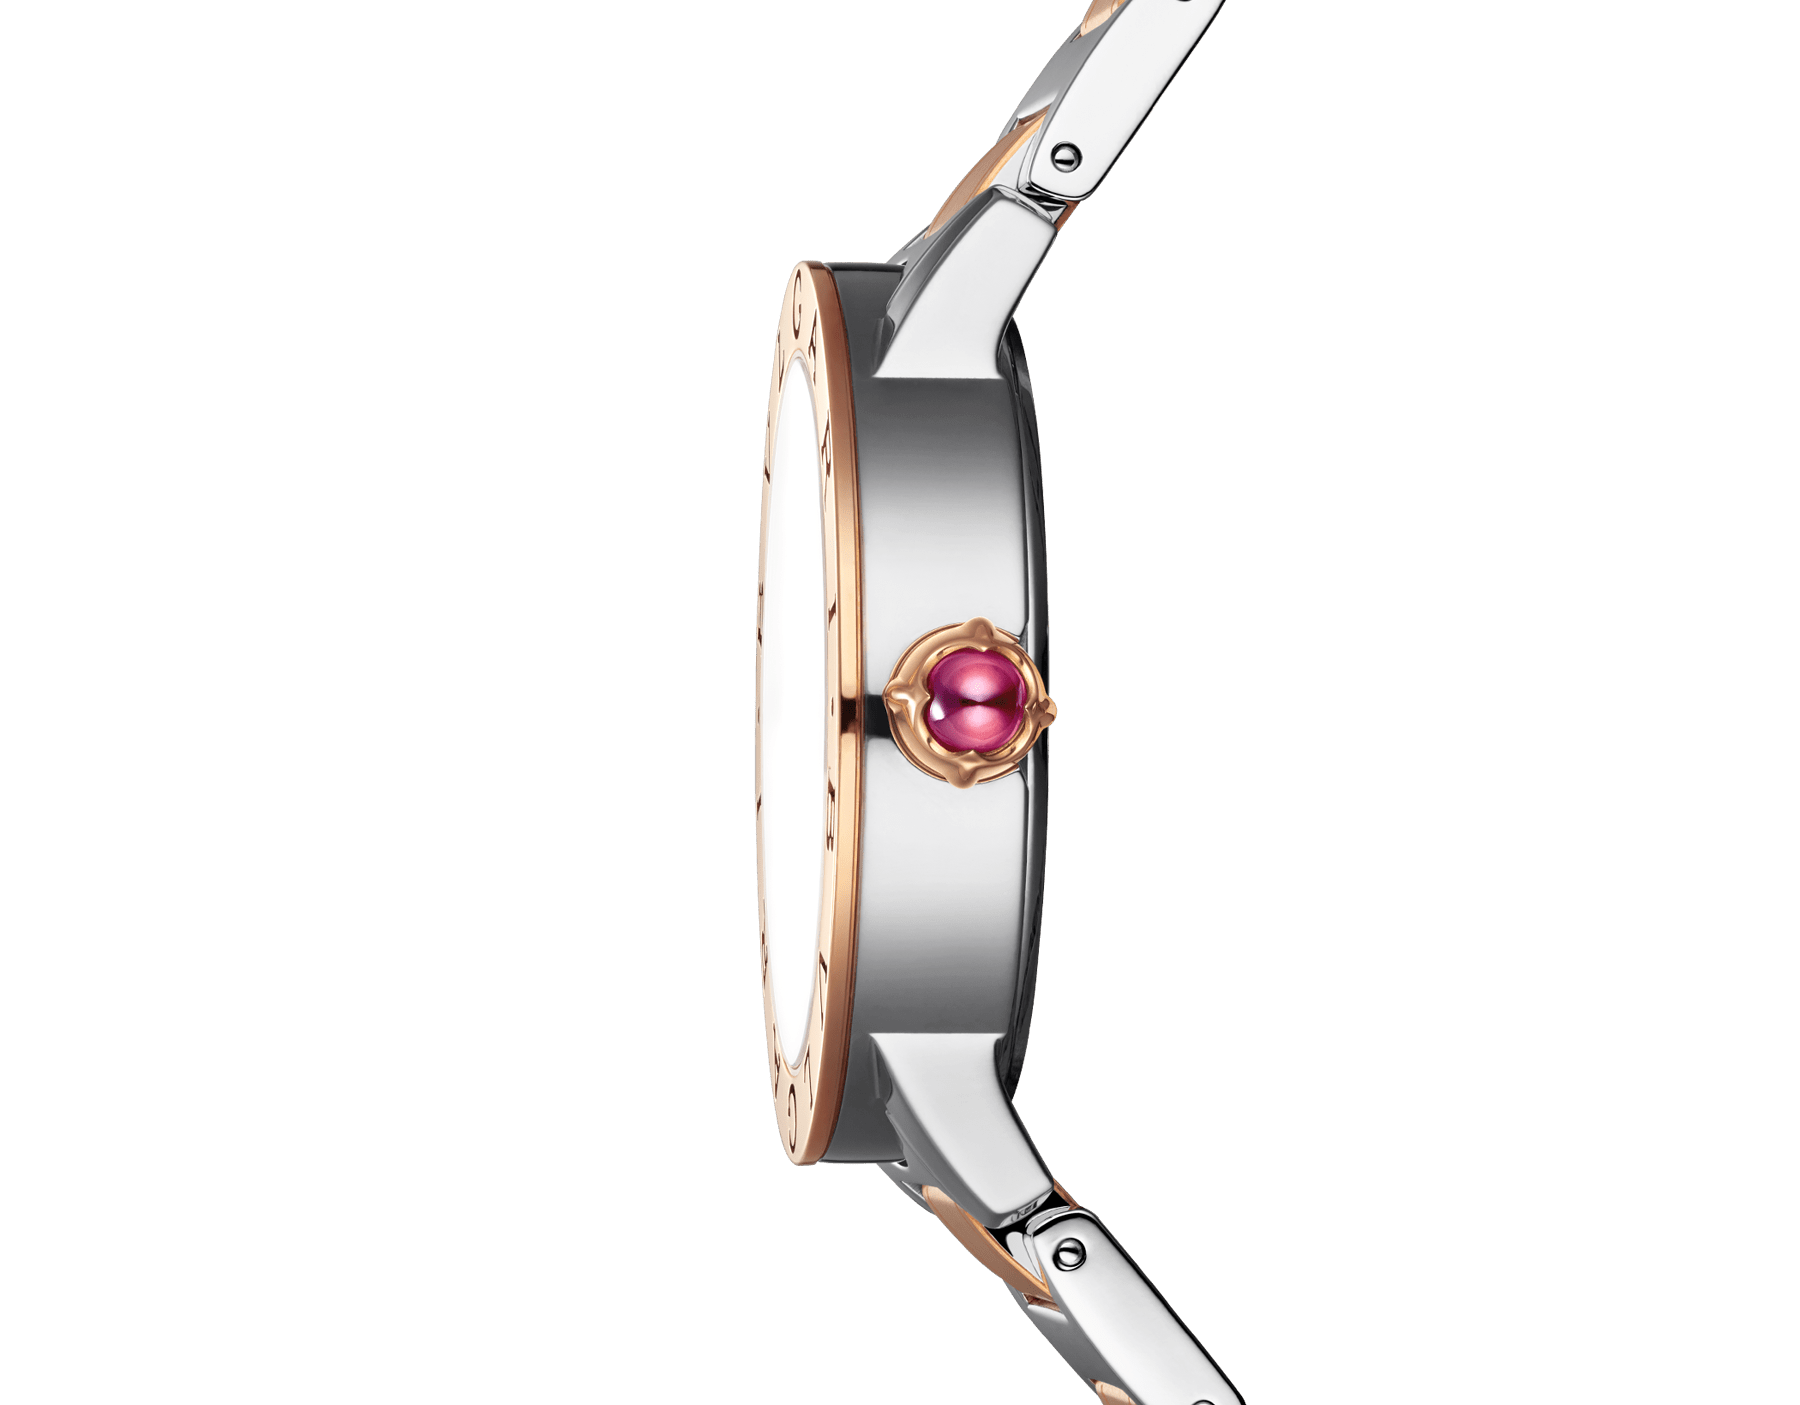 BVLGARI BVLGARI watch in 18 kt rose gold and stainless steel case and bracelet, with white mother-of-pearl dial and diamond indexes. Medium model 101891 image 3